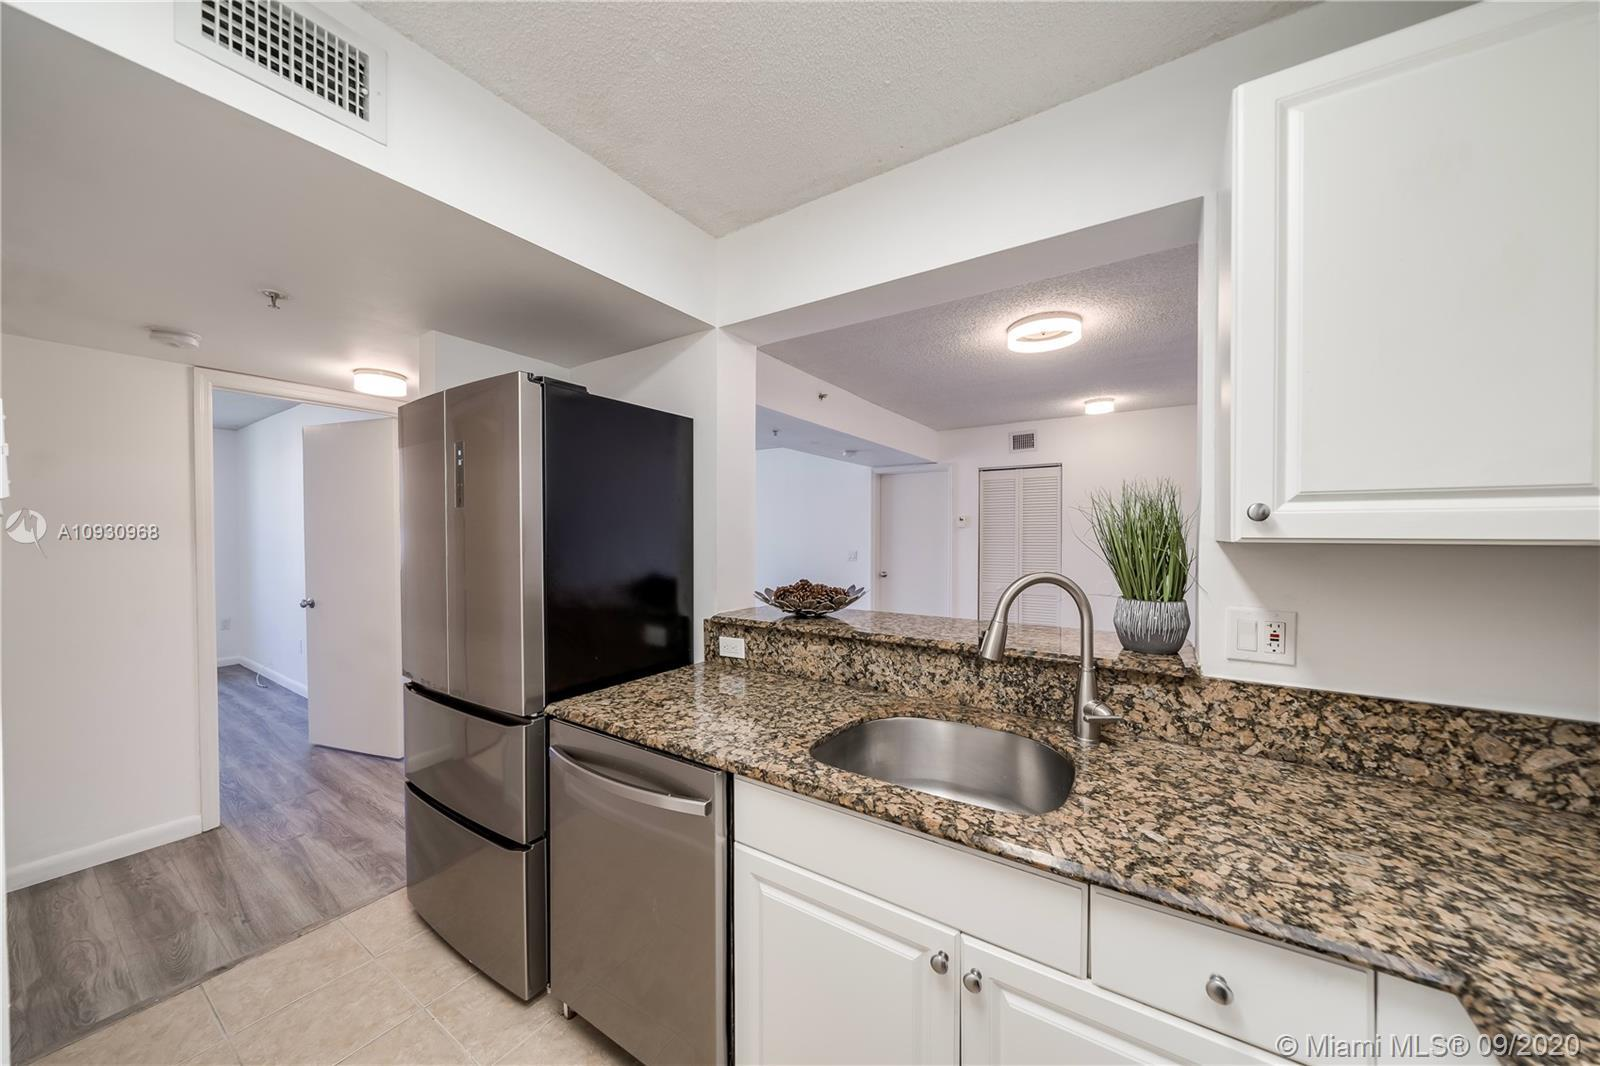 Totally renovated 2 bedroom apartment with new air conditioning, lighting, appliances, flooring, and